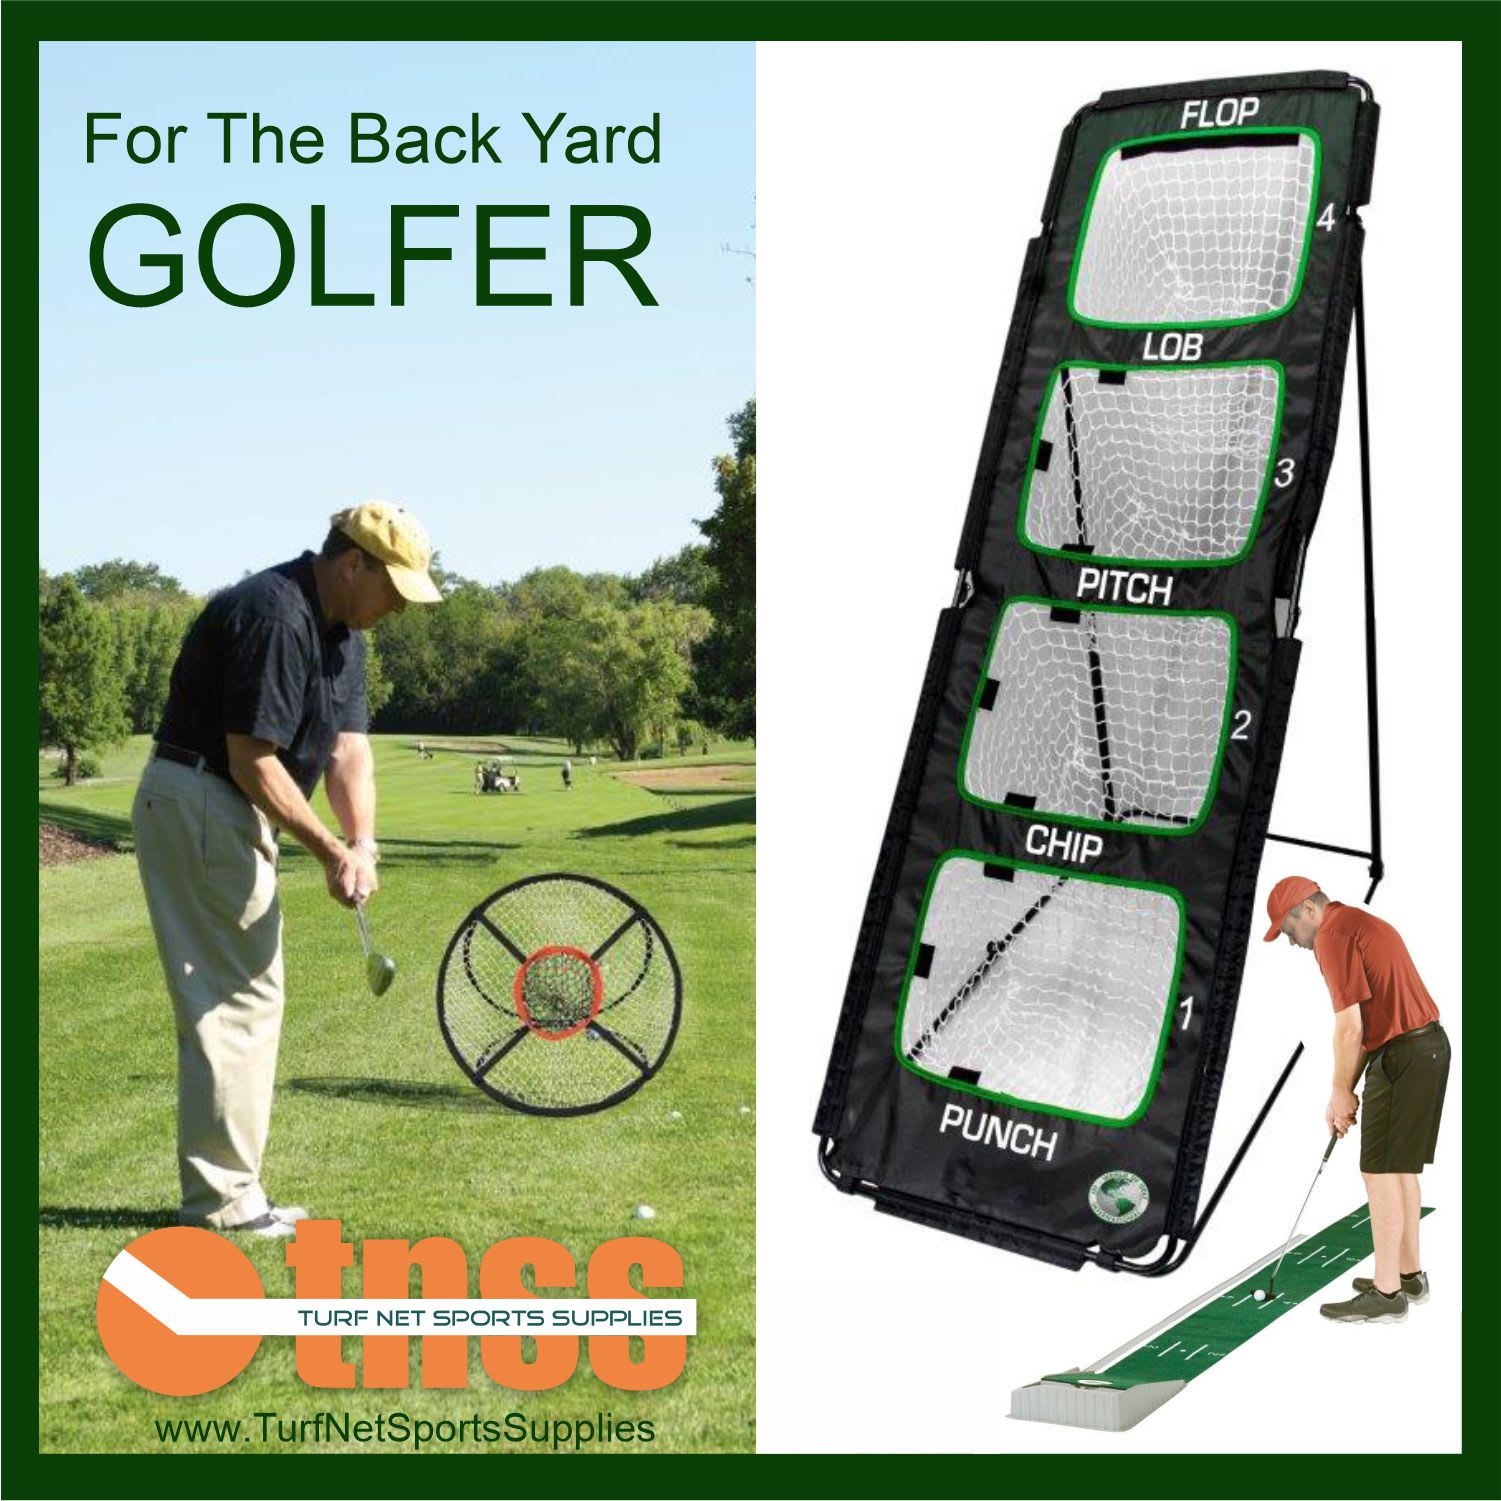 For the backyard golfer